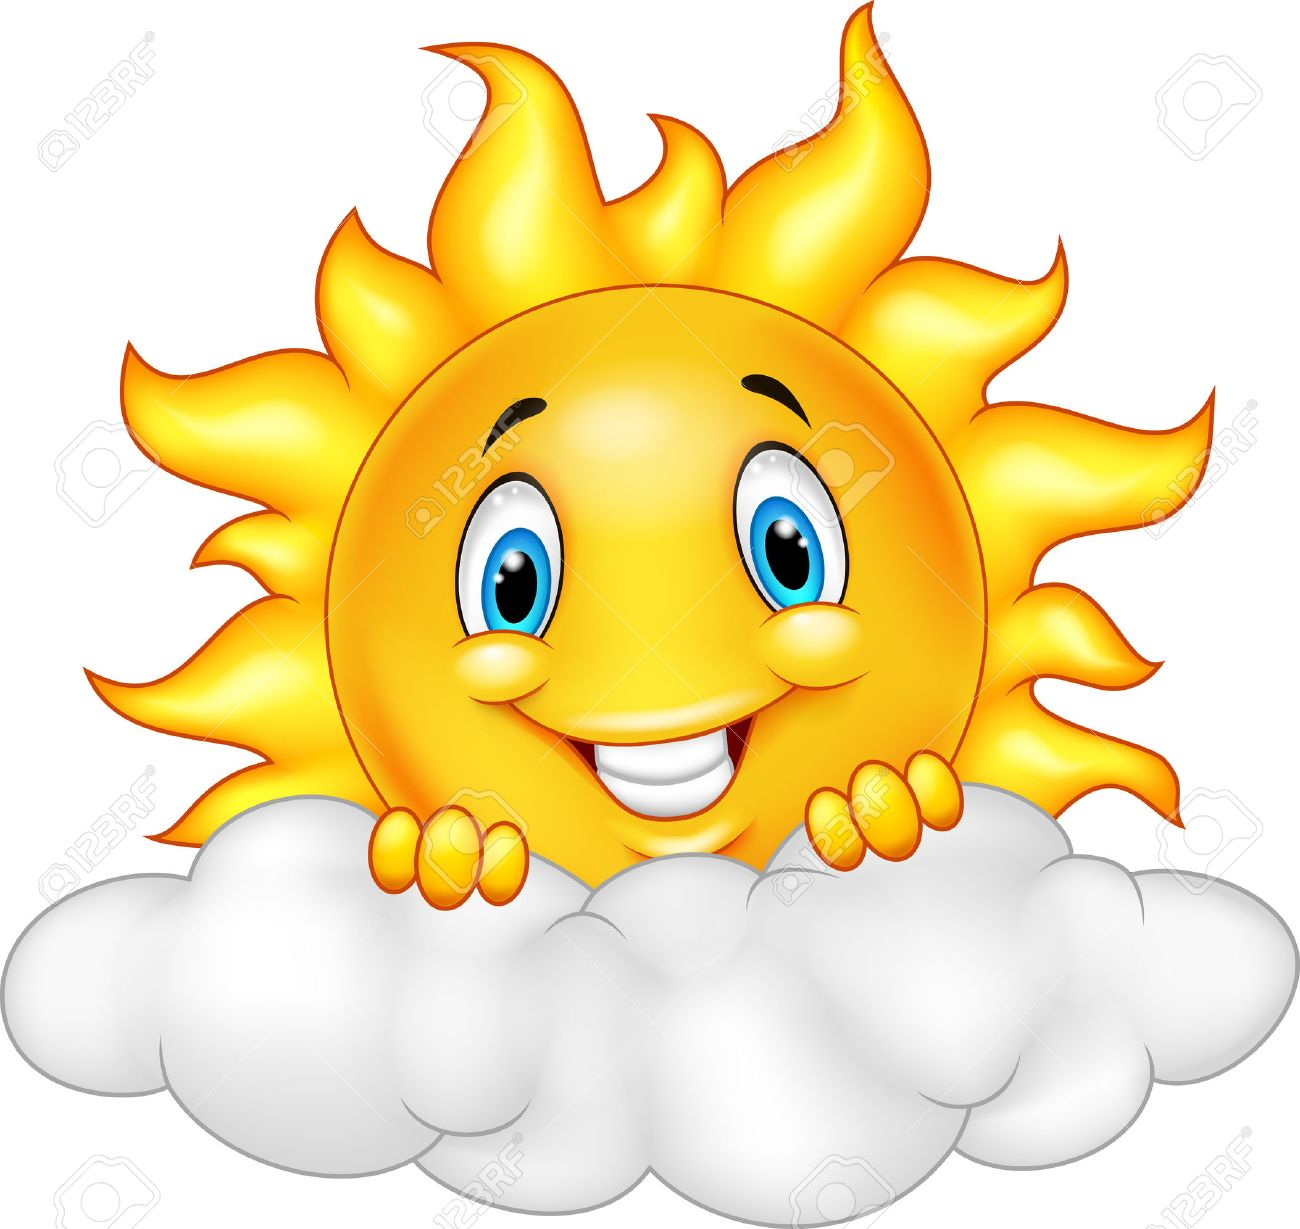 Smiling sun images - Smiling Sun Cartoon Mascot Character Stock Vector 41386961